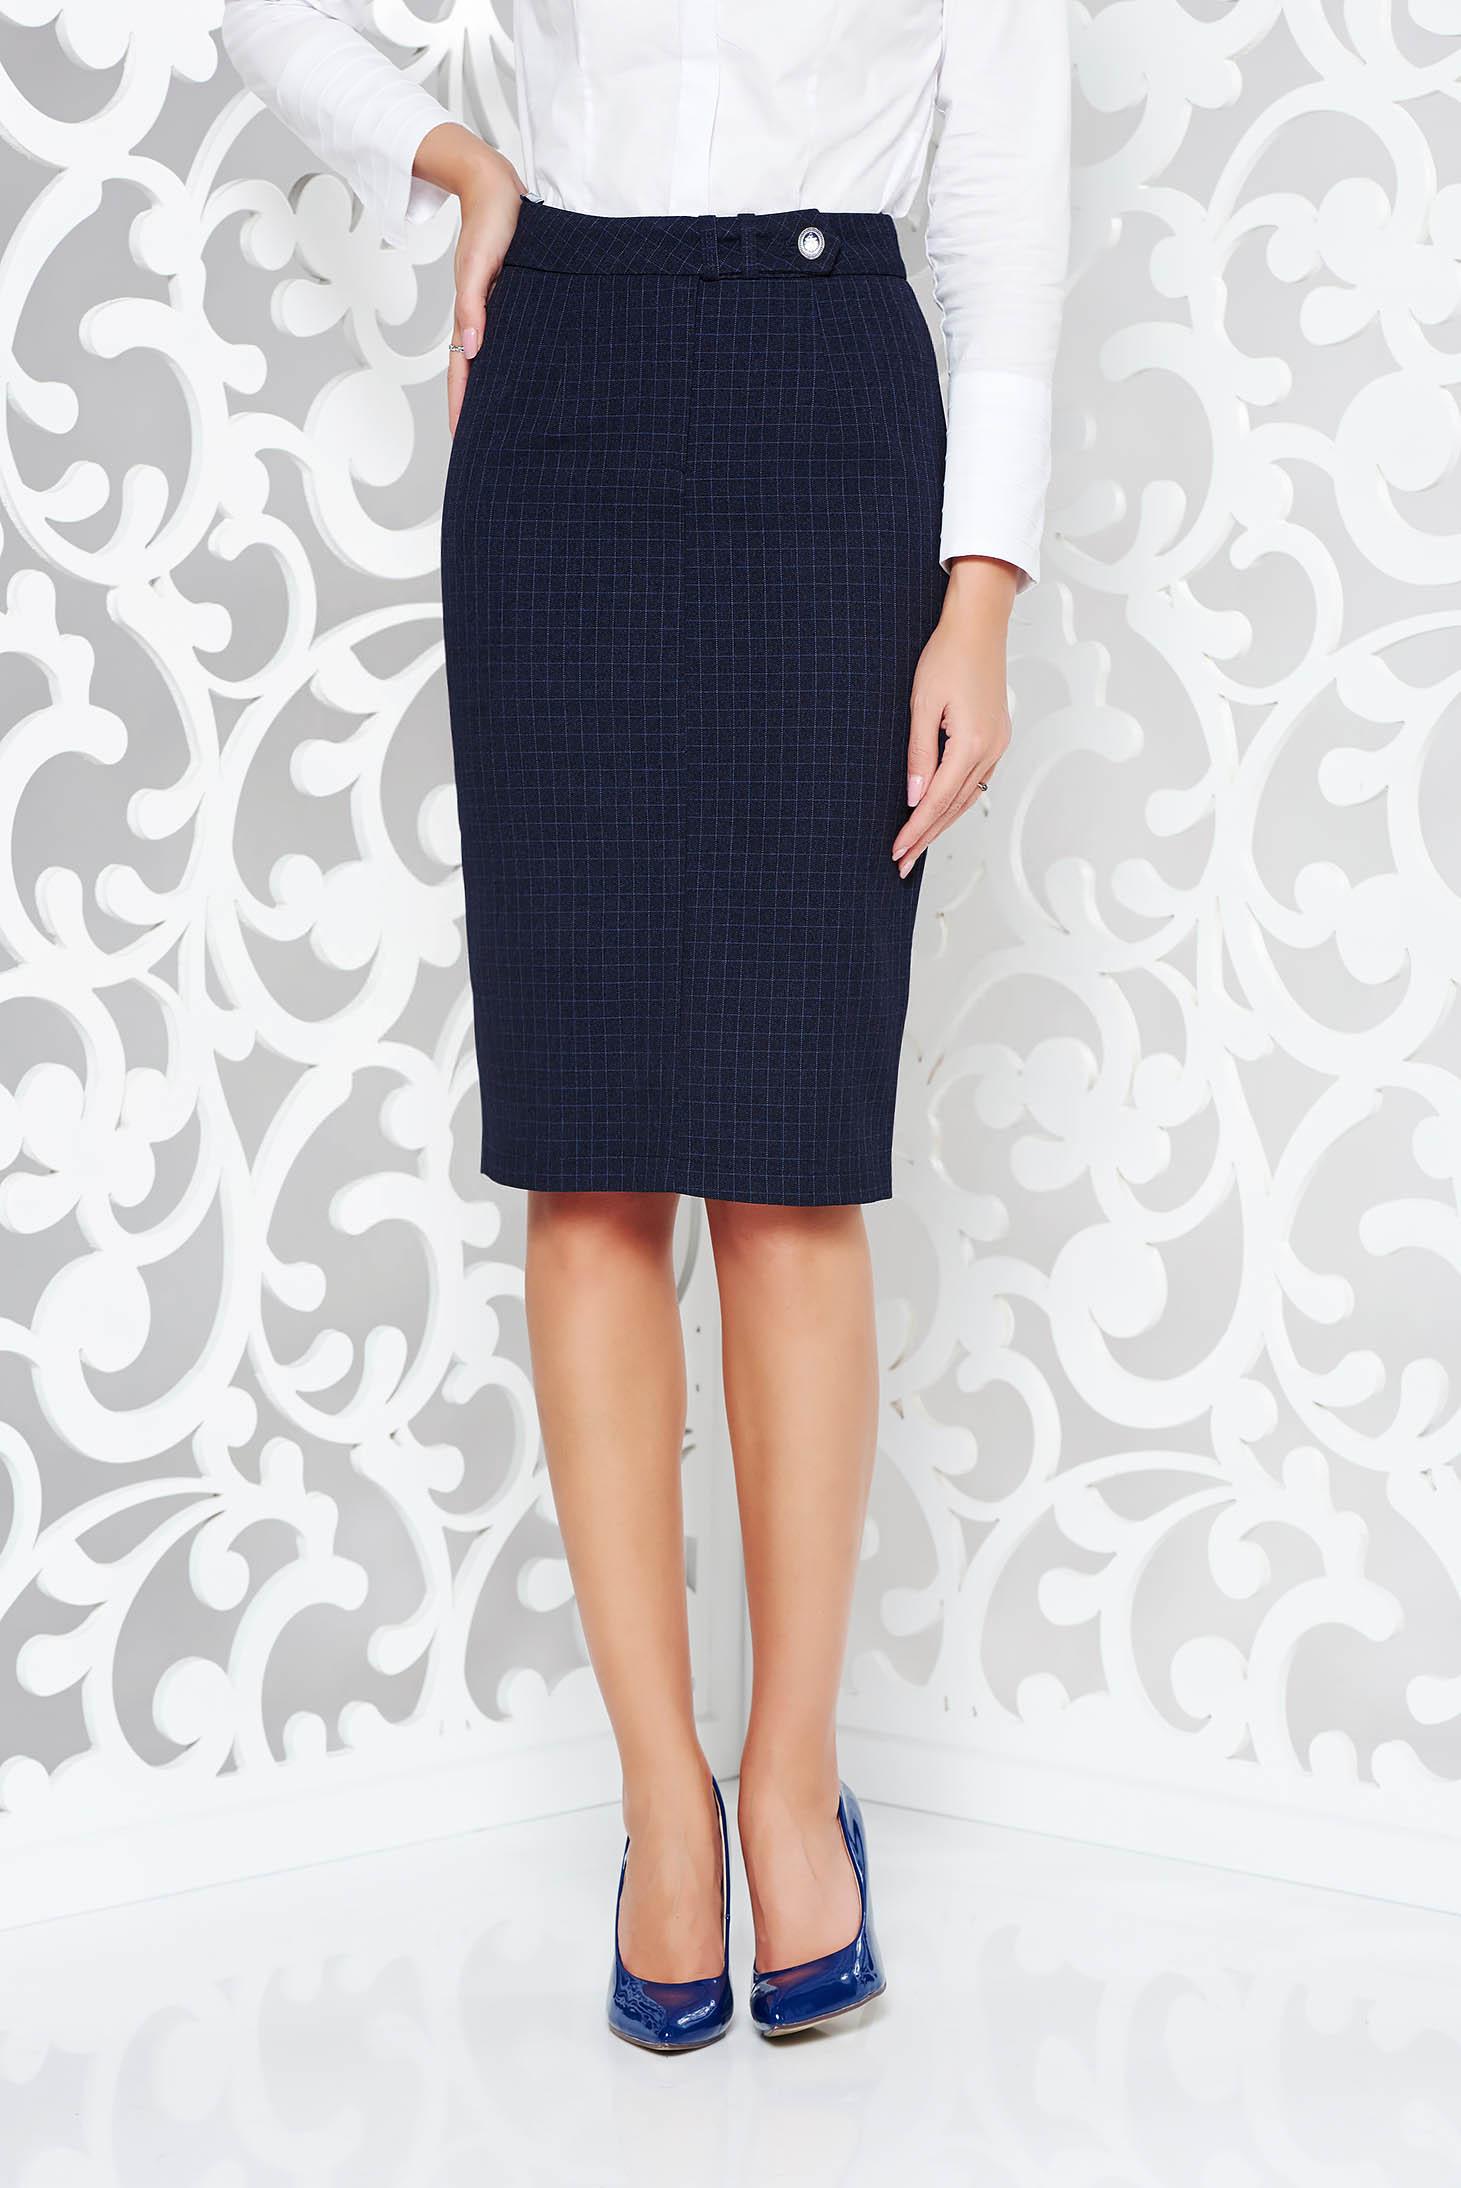 b60e4fabd6 Darkblue office high waisted pencil skirt from non elastic fabric plaid ...